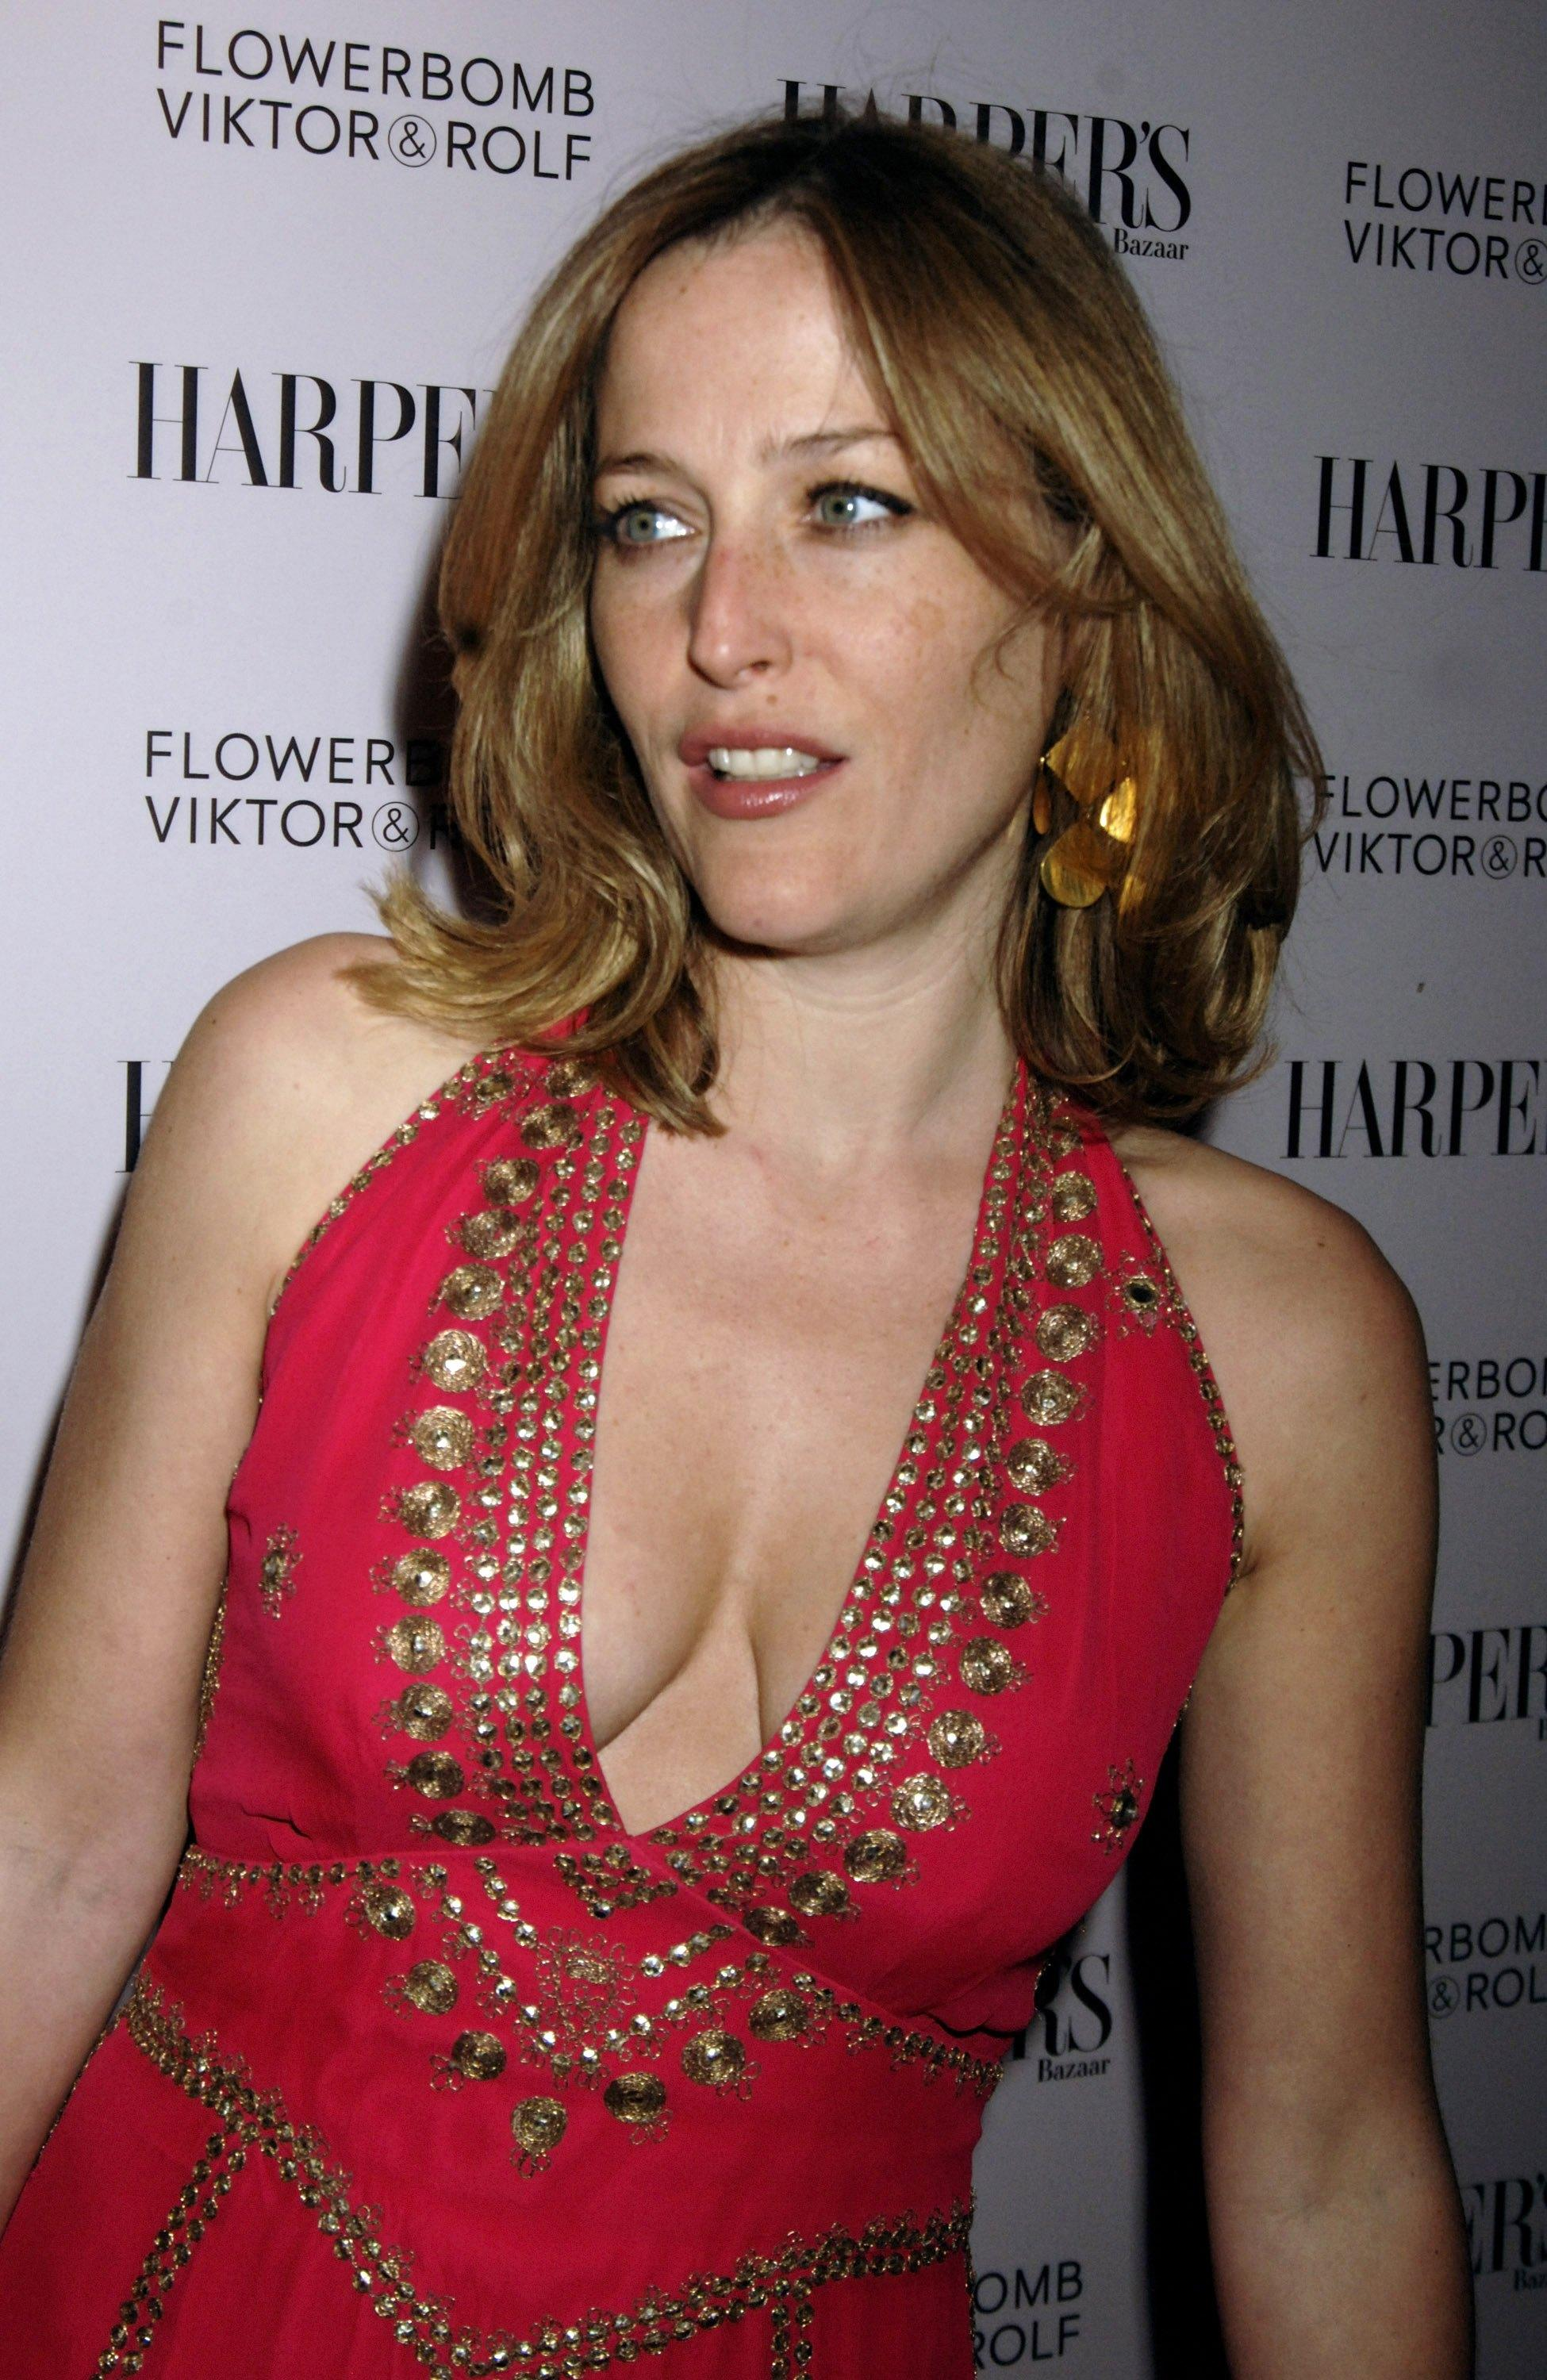 cherrish pimpandhost Gillian Anderson [Archive] - Page 2 - FreeOnes Board - The Free Sex  Community